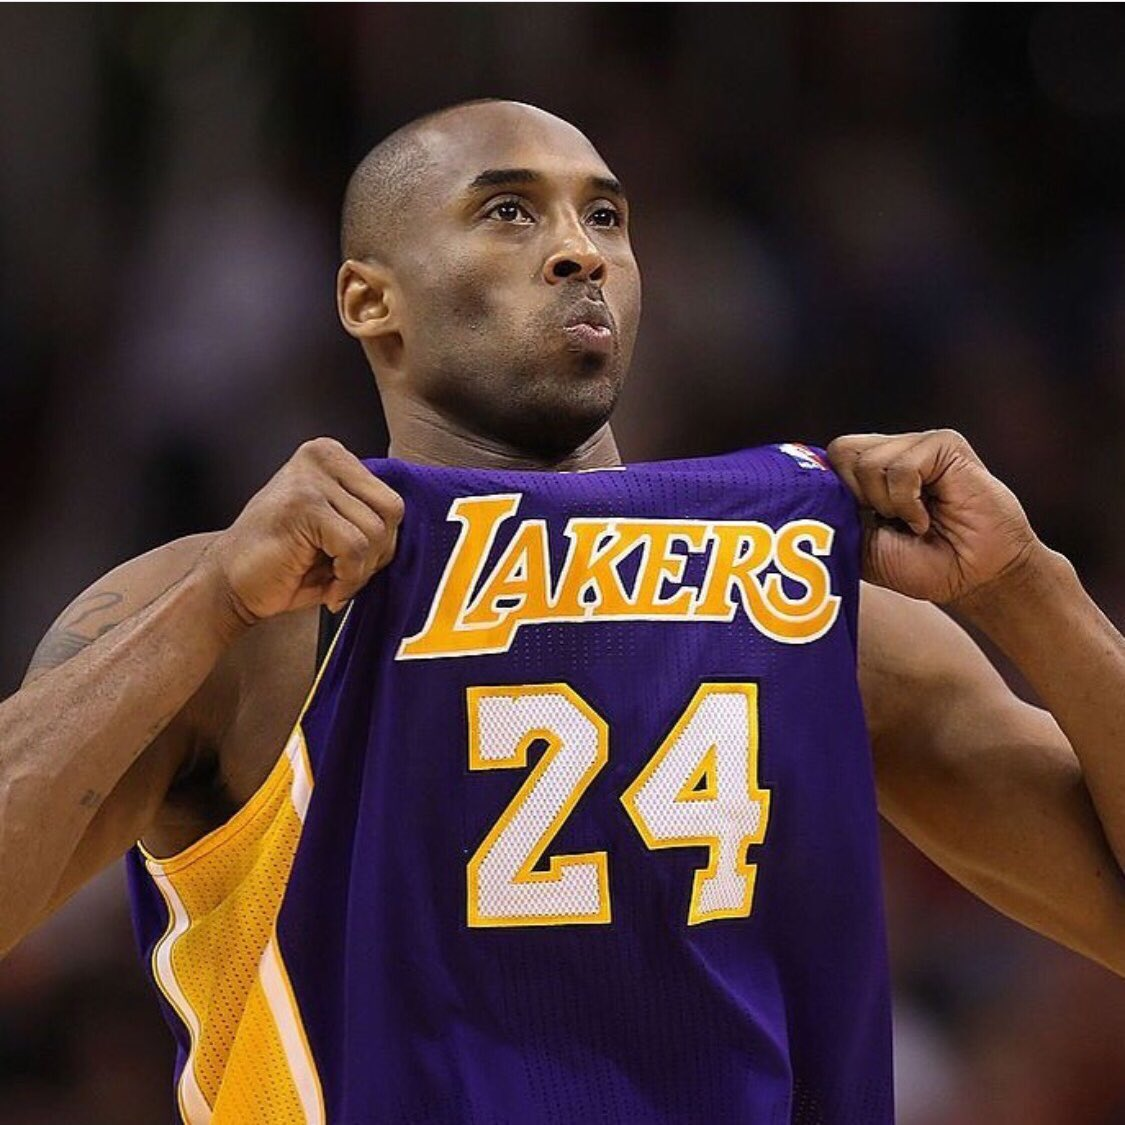 I still say why You of all the Ugly Badd Ppl alive in this World Why You 😞😓😓😓I Miss You KOBE ADORED YOU LOVE 💜💛💜💛💜💛 #MambaForever